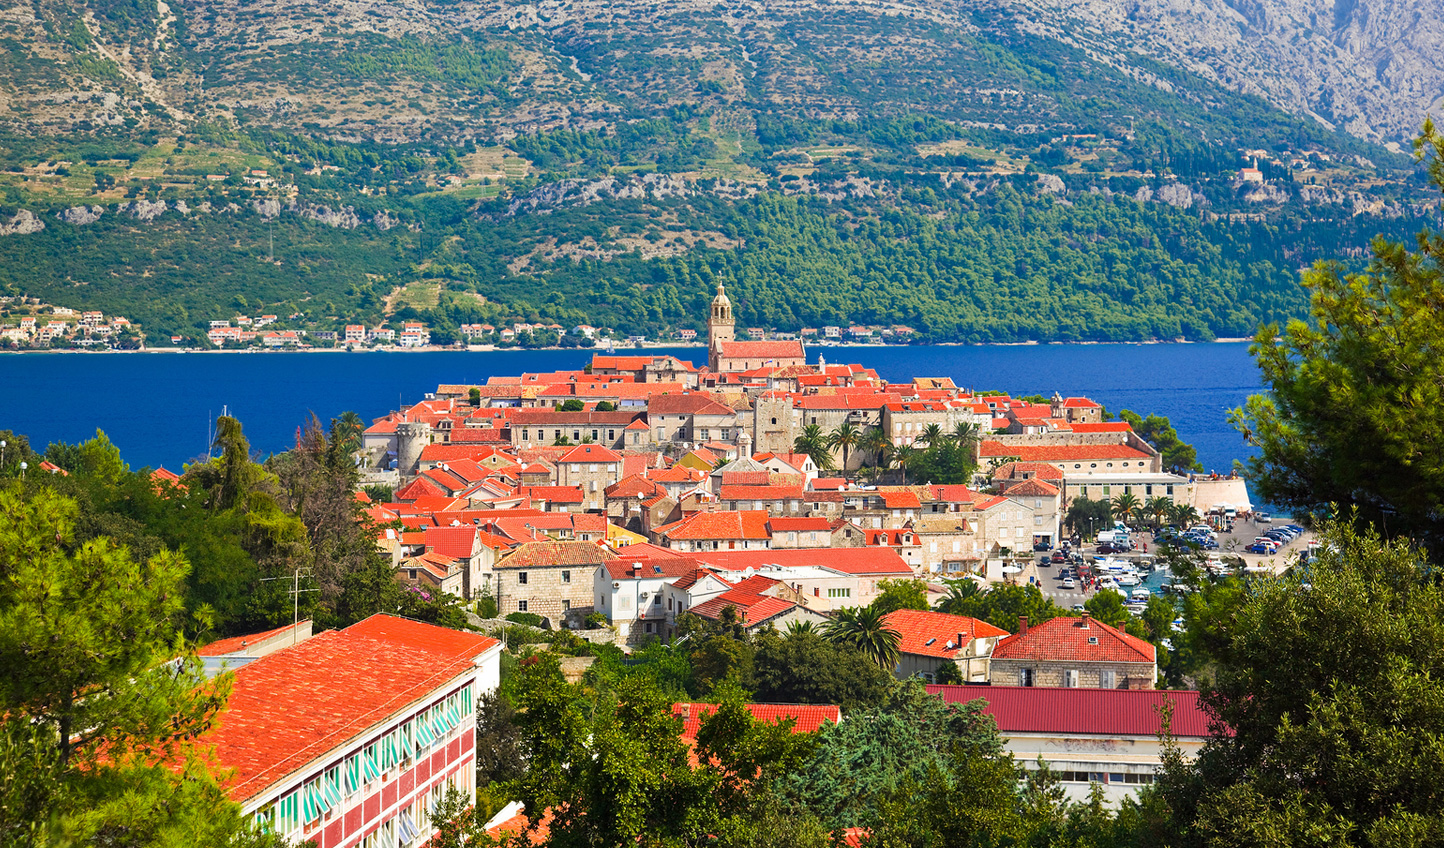 Korcula Island, arrival by private cruise